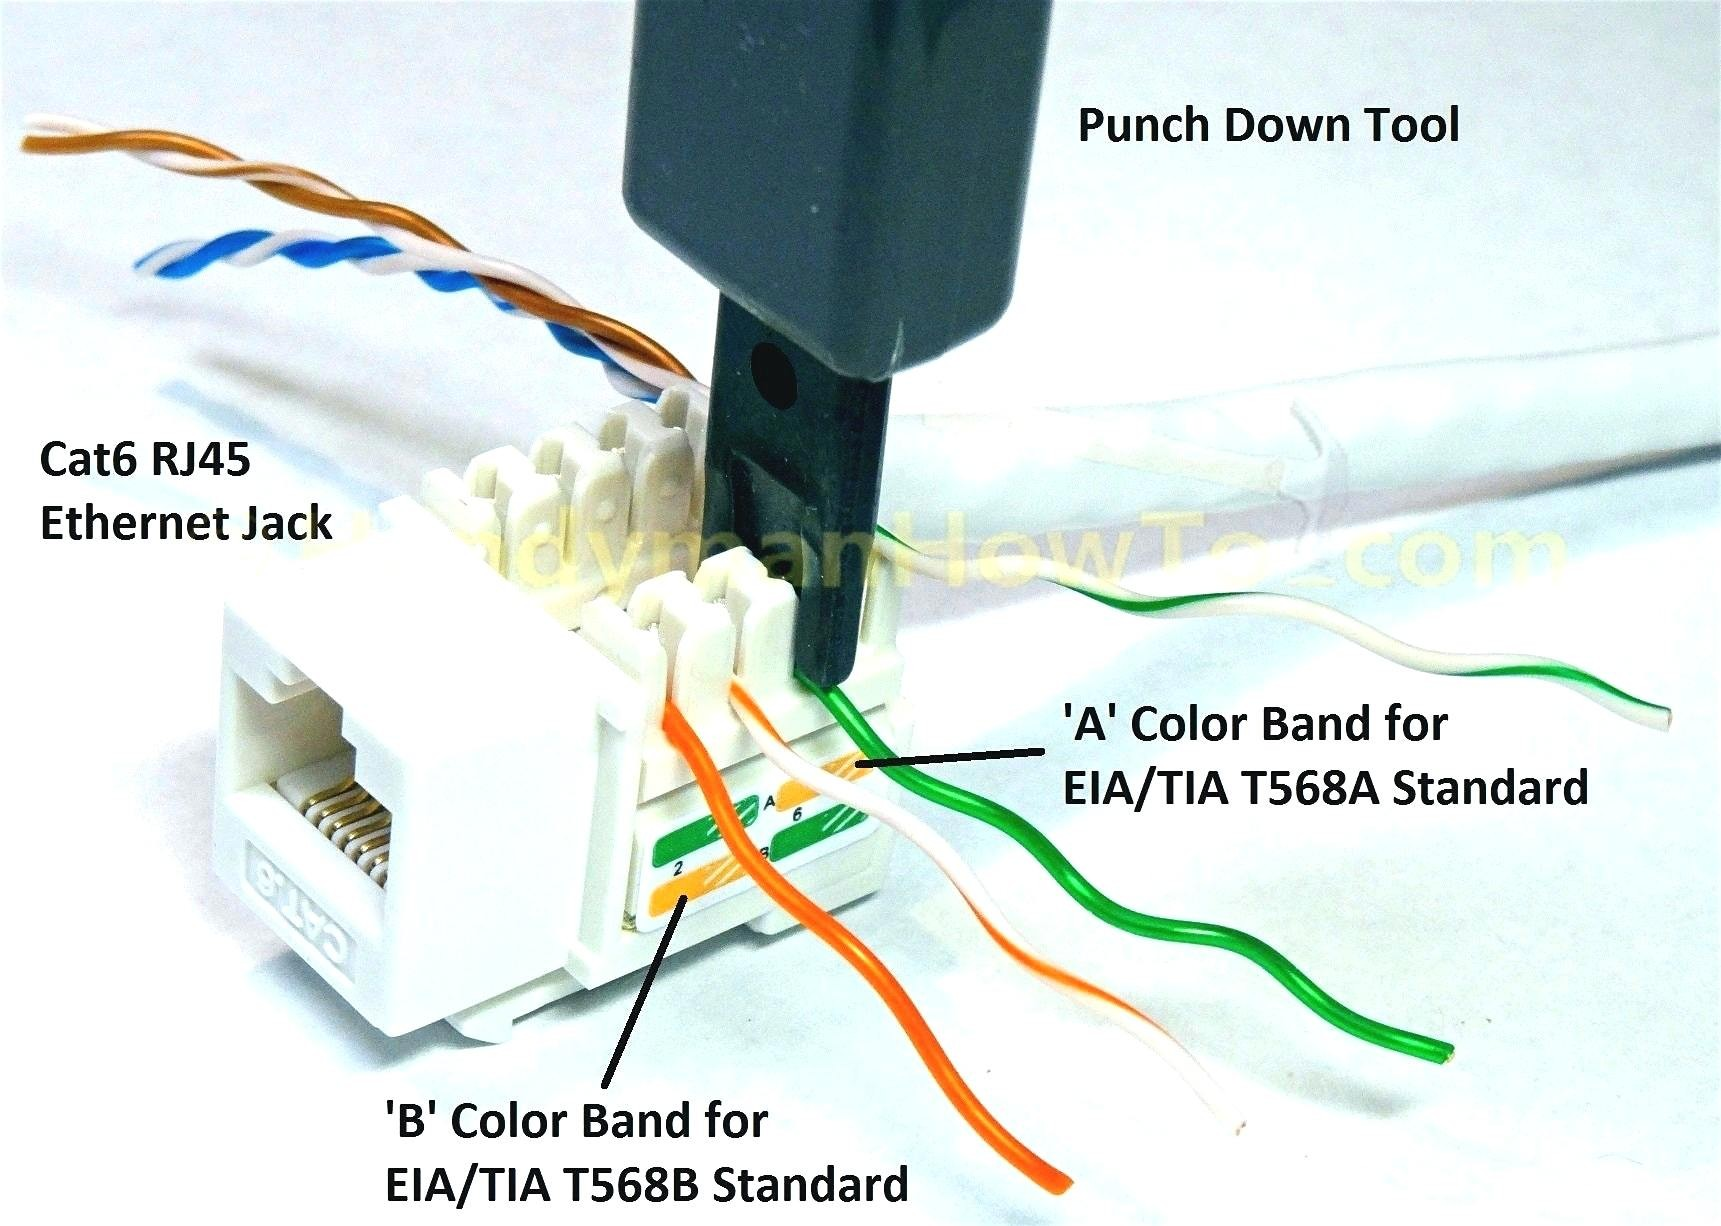 Cat5 Jack Wiring Diagram Beautiful Cat 5 Jack Gallery Everything You Need to Know About Of Cat5 Jack Wiring Diagram